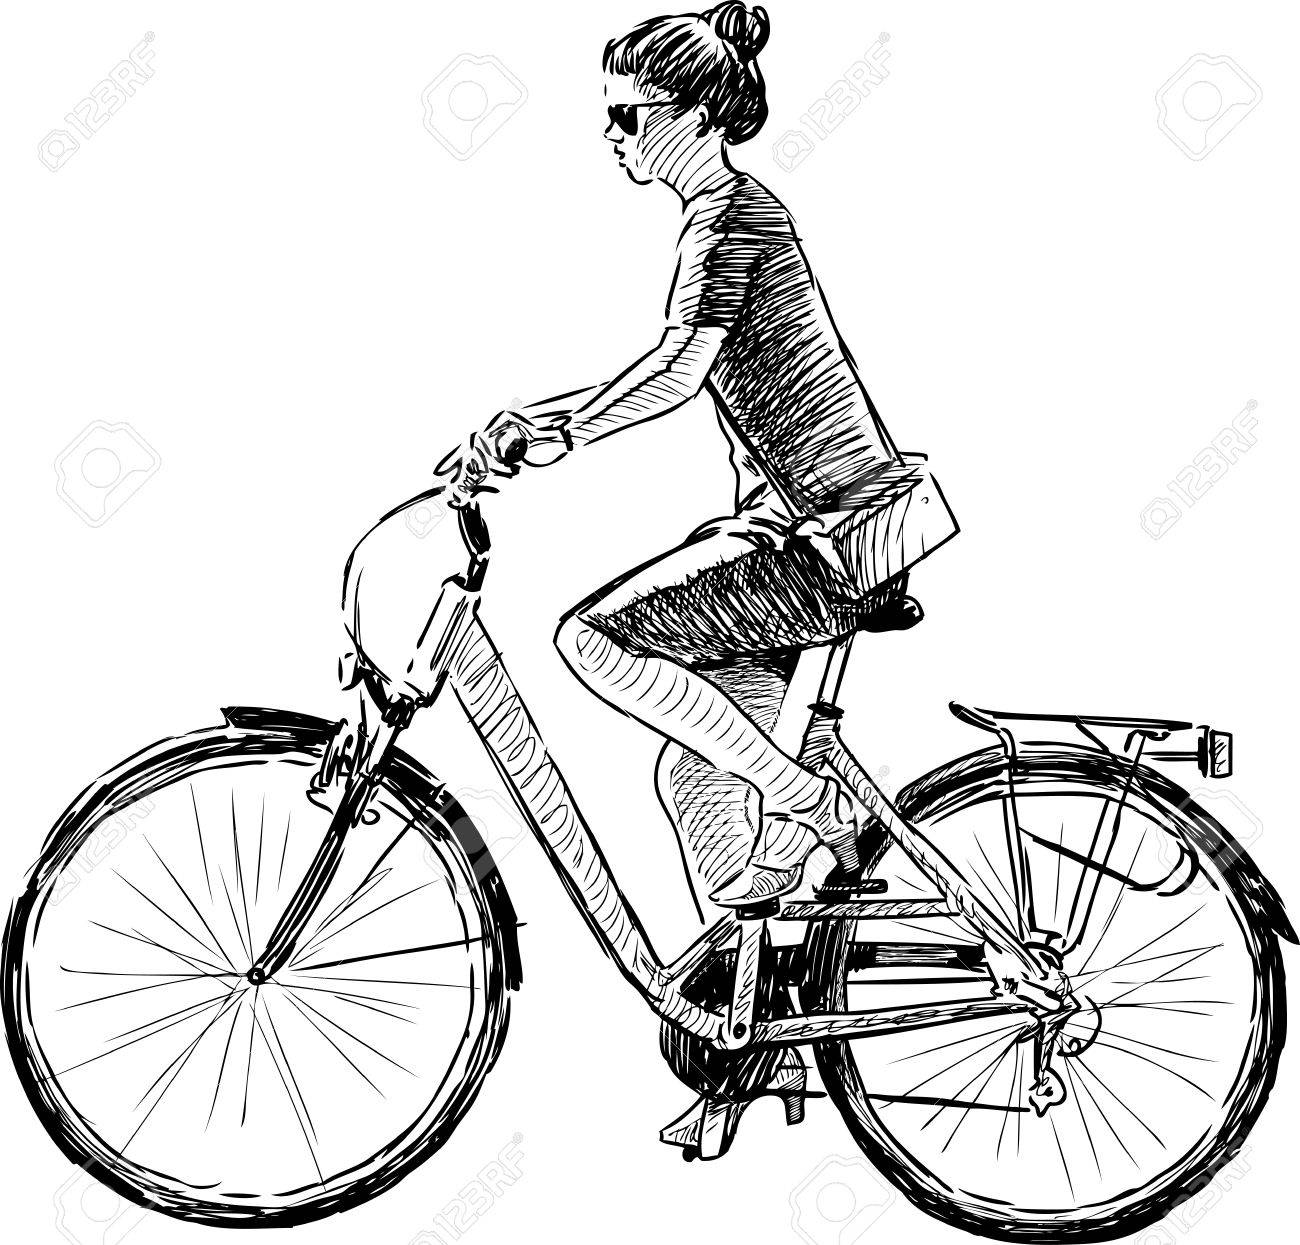 Sketch Of A Girl Riding A Bike Royalty Free Cliparts Vectors And